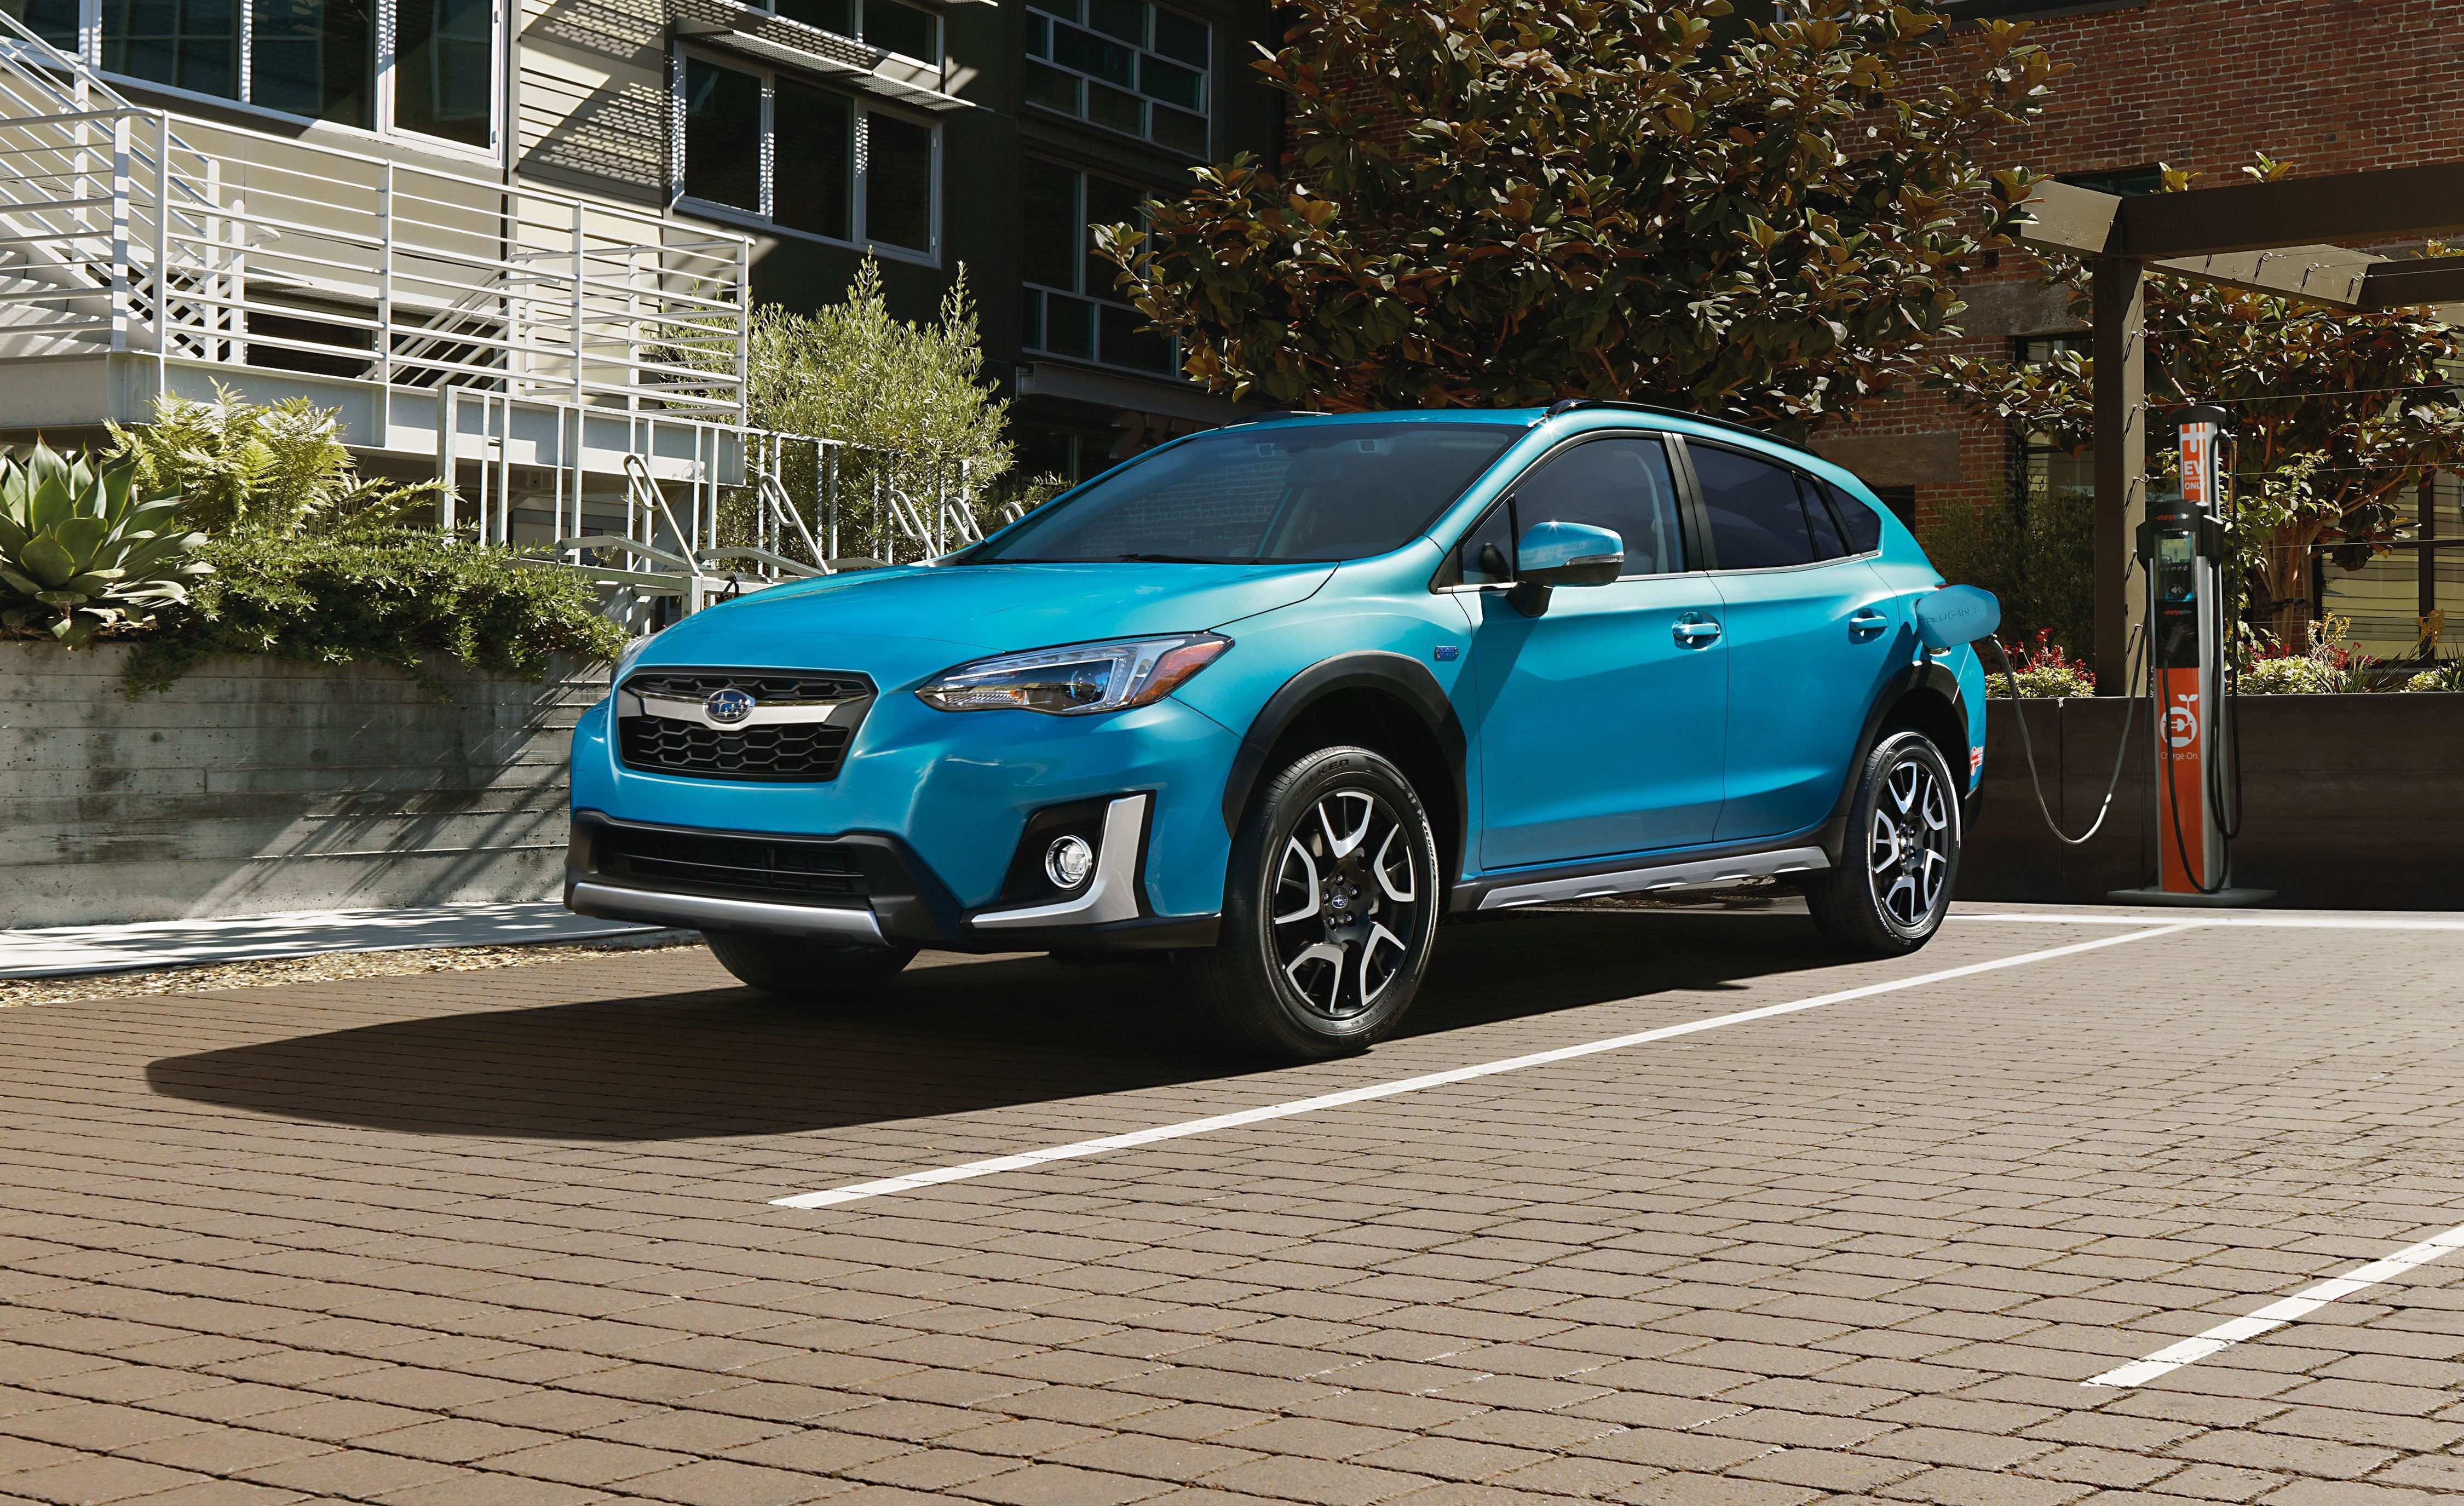 21 New 2019 Subaru Electric Price and Review for 2019 Subaru Electric